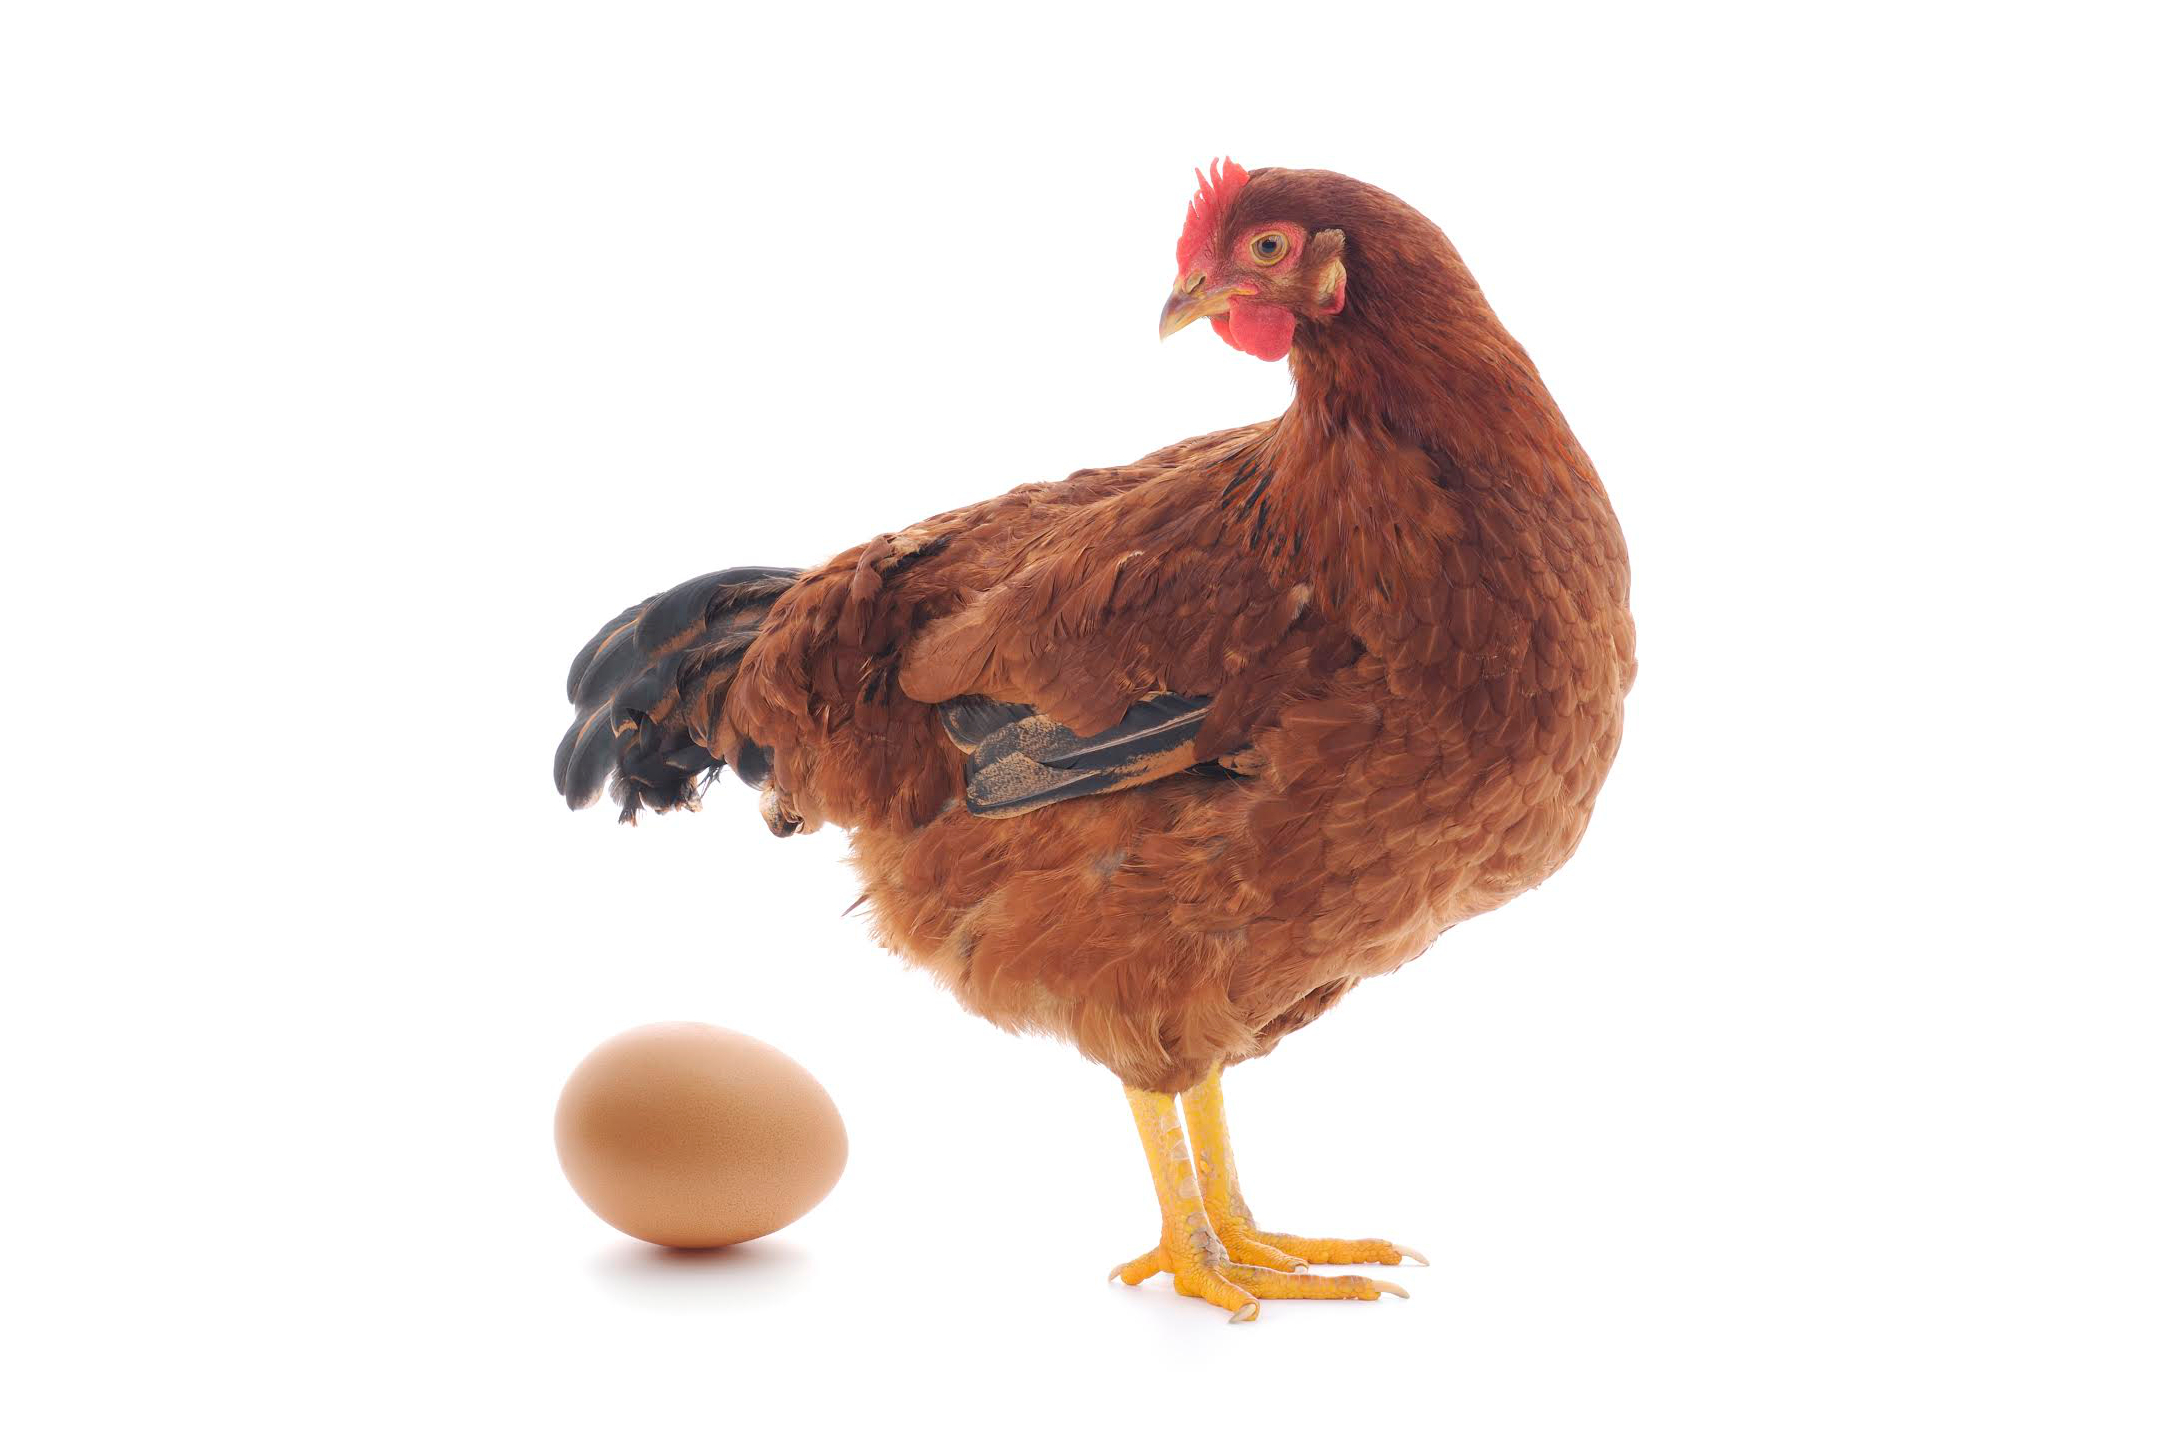 Qualitative vs. Quantitative - Which Comes First, the Chicken or the Egg?